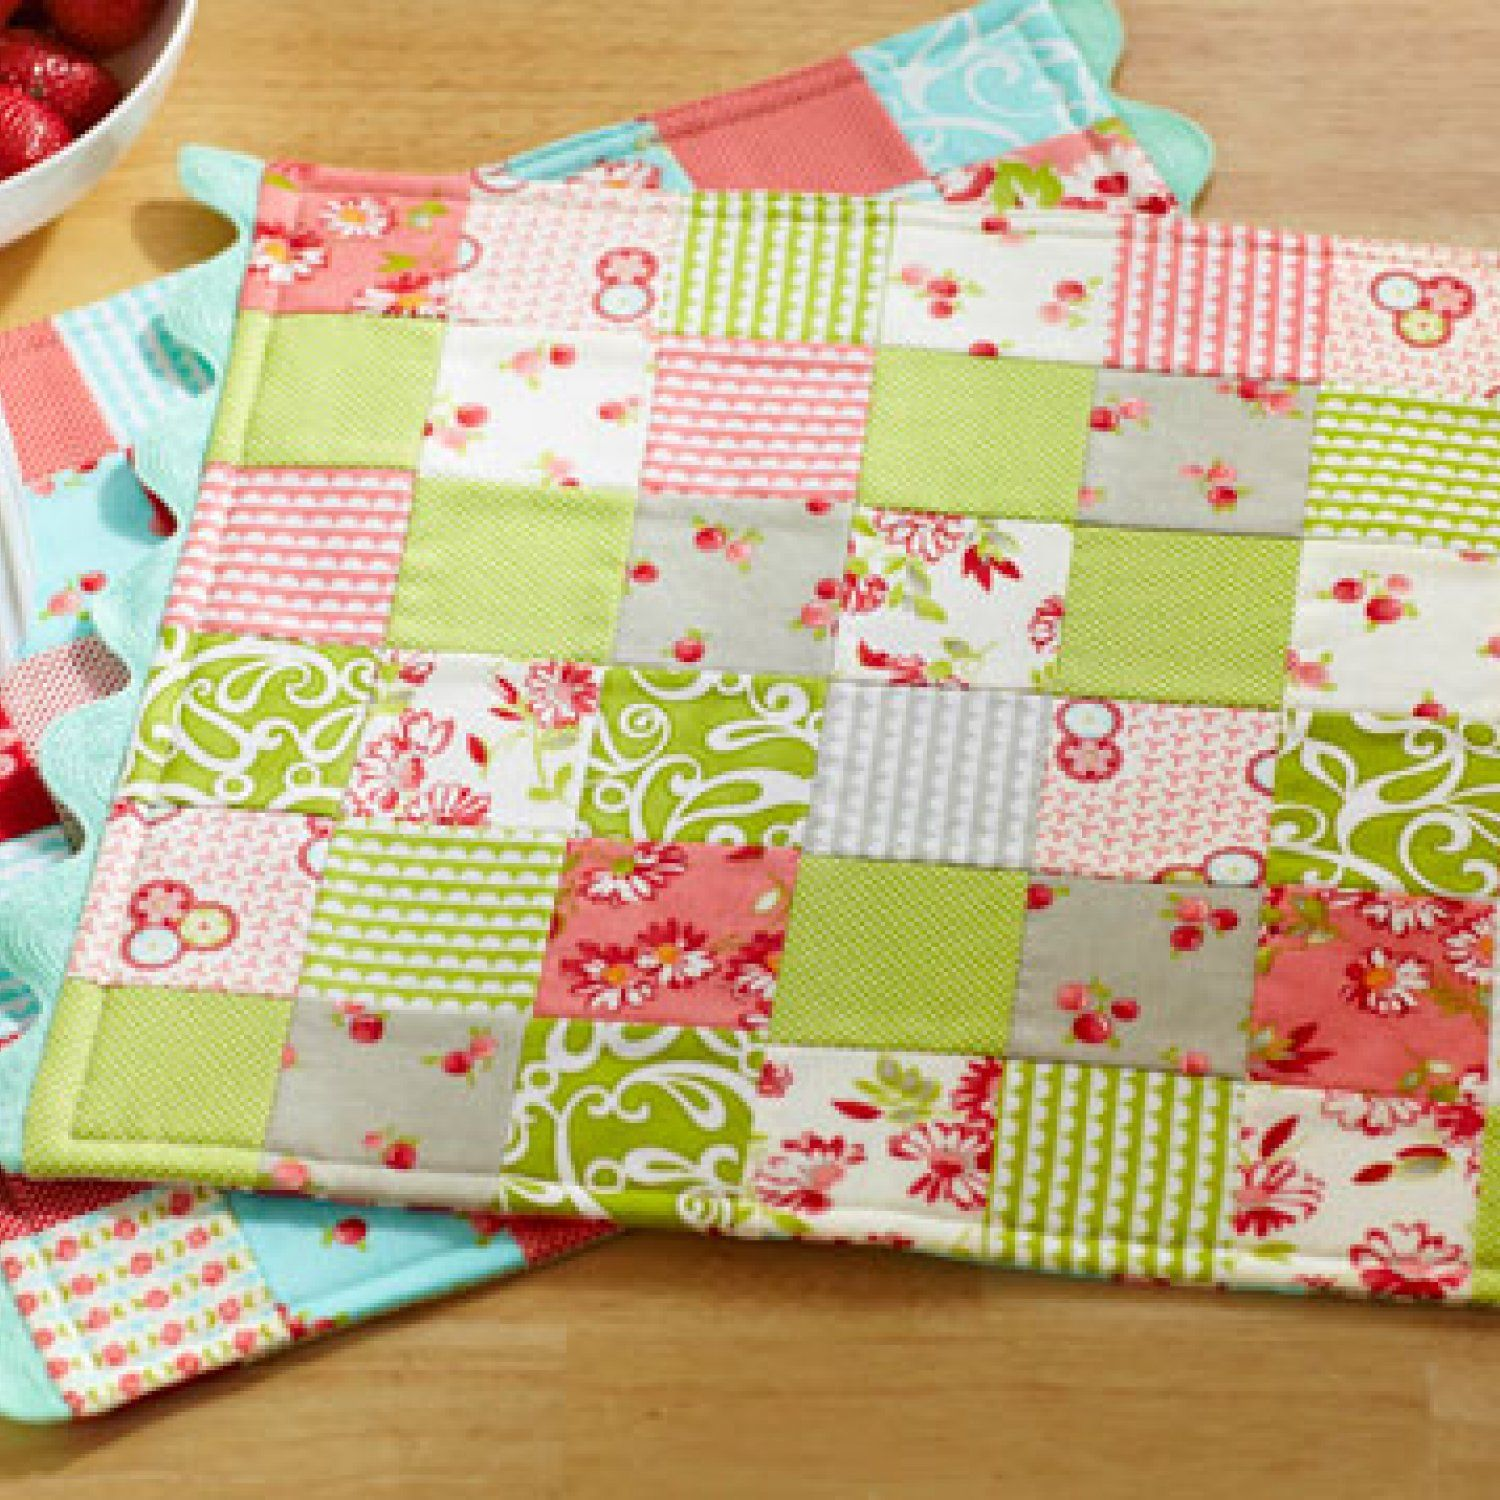 Patchwork Place Mats Placemats Patterns Place Mats Quilted Quilts